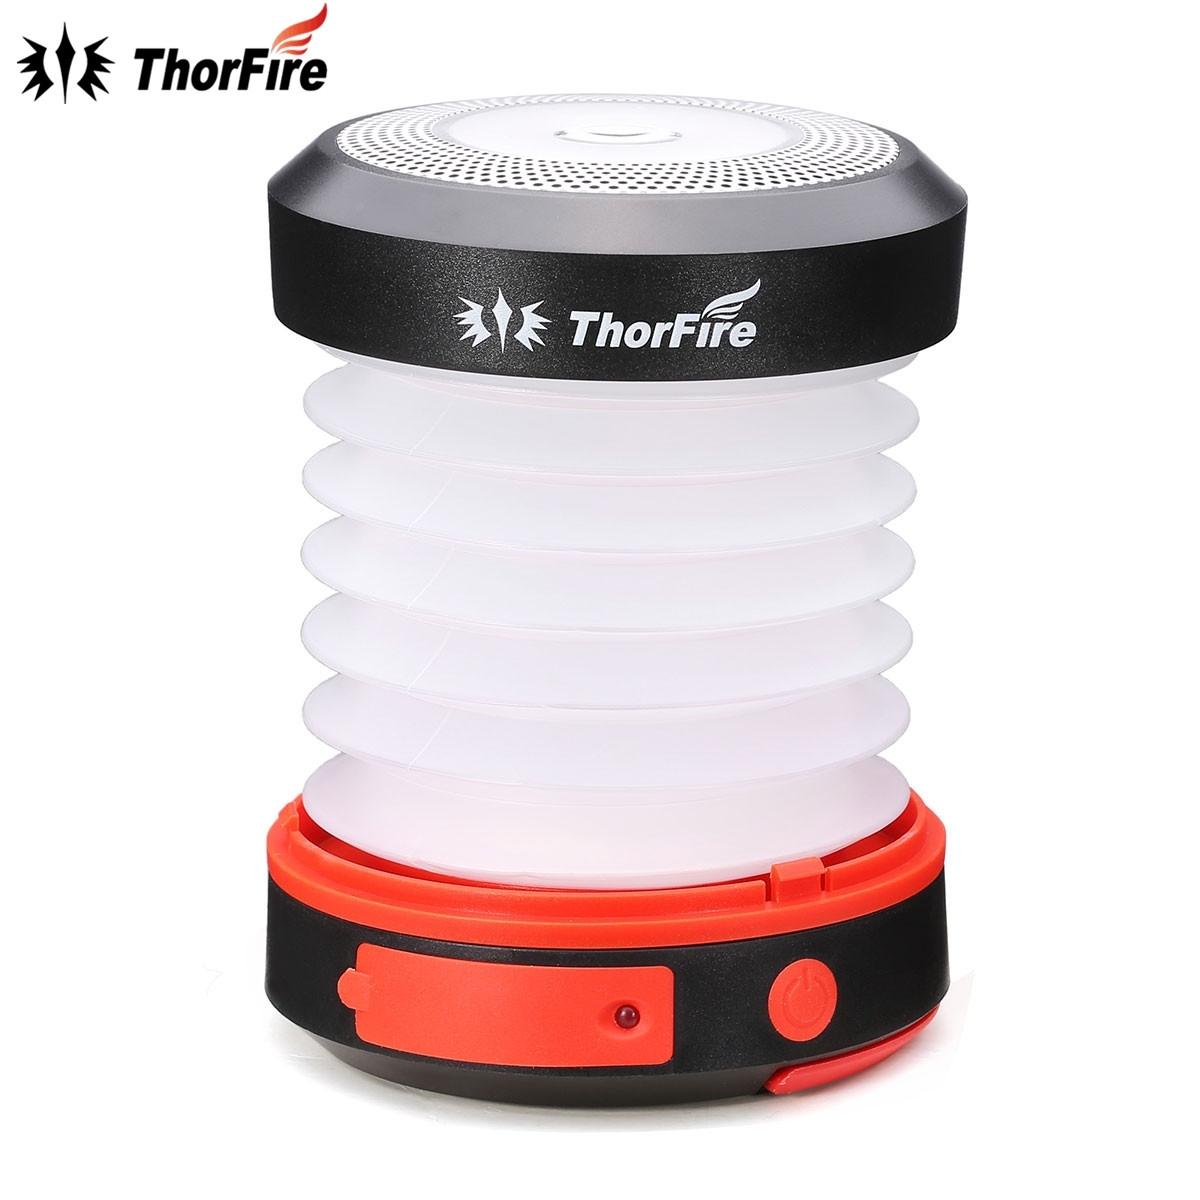 Thorfire Portable Solar Led Camping Lantern Usb Rechargeable Light Intended For Outdoor Rechargeable Lanterns (View 19 of 20)